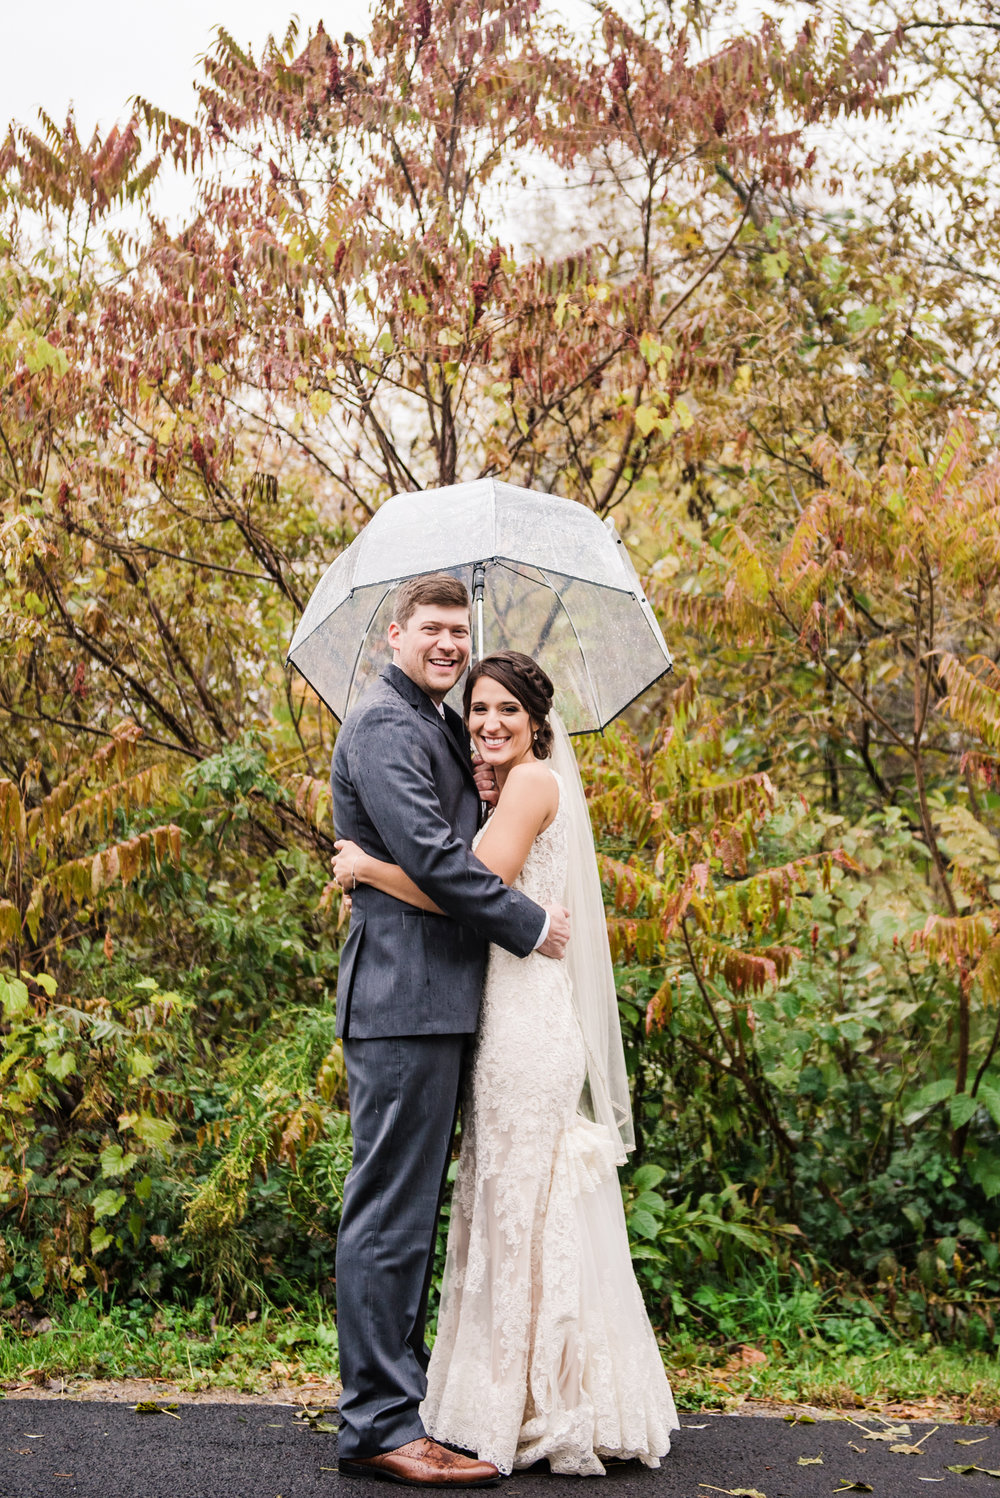 Wolf_Oak_Acres_Central_NY_Wedding_JILL_STUDIO_Rochester_NY_Photographer_DSC_7486.jpg